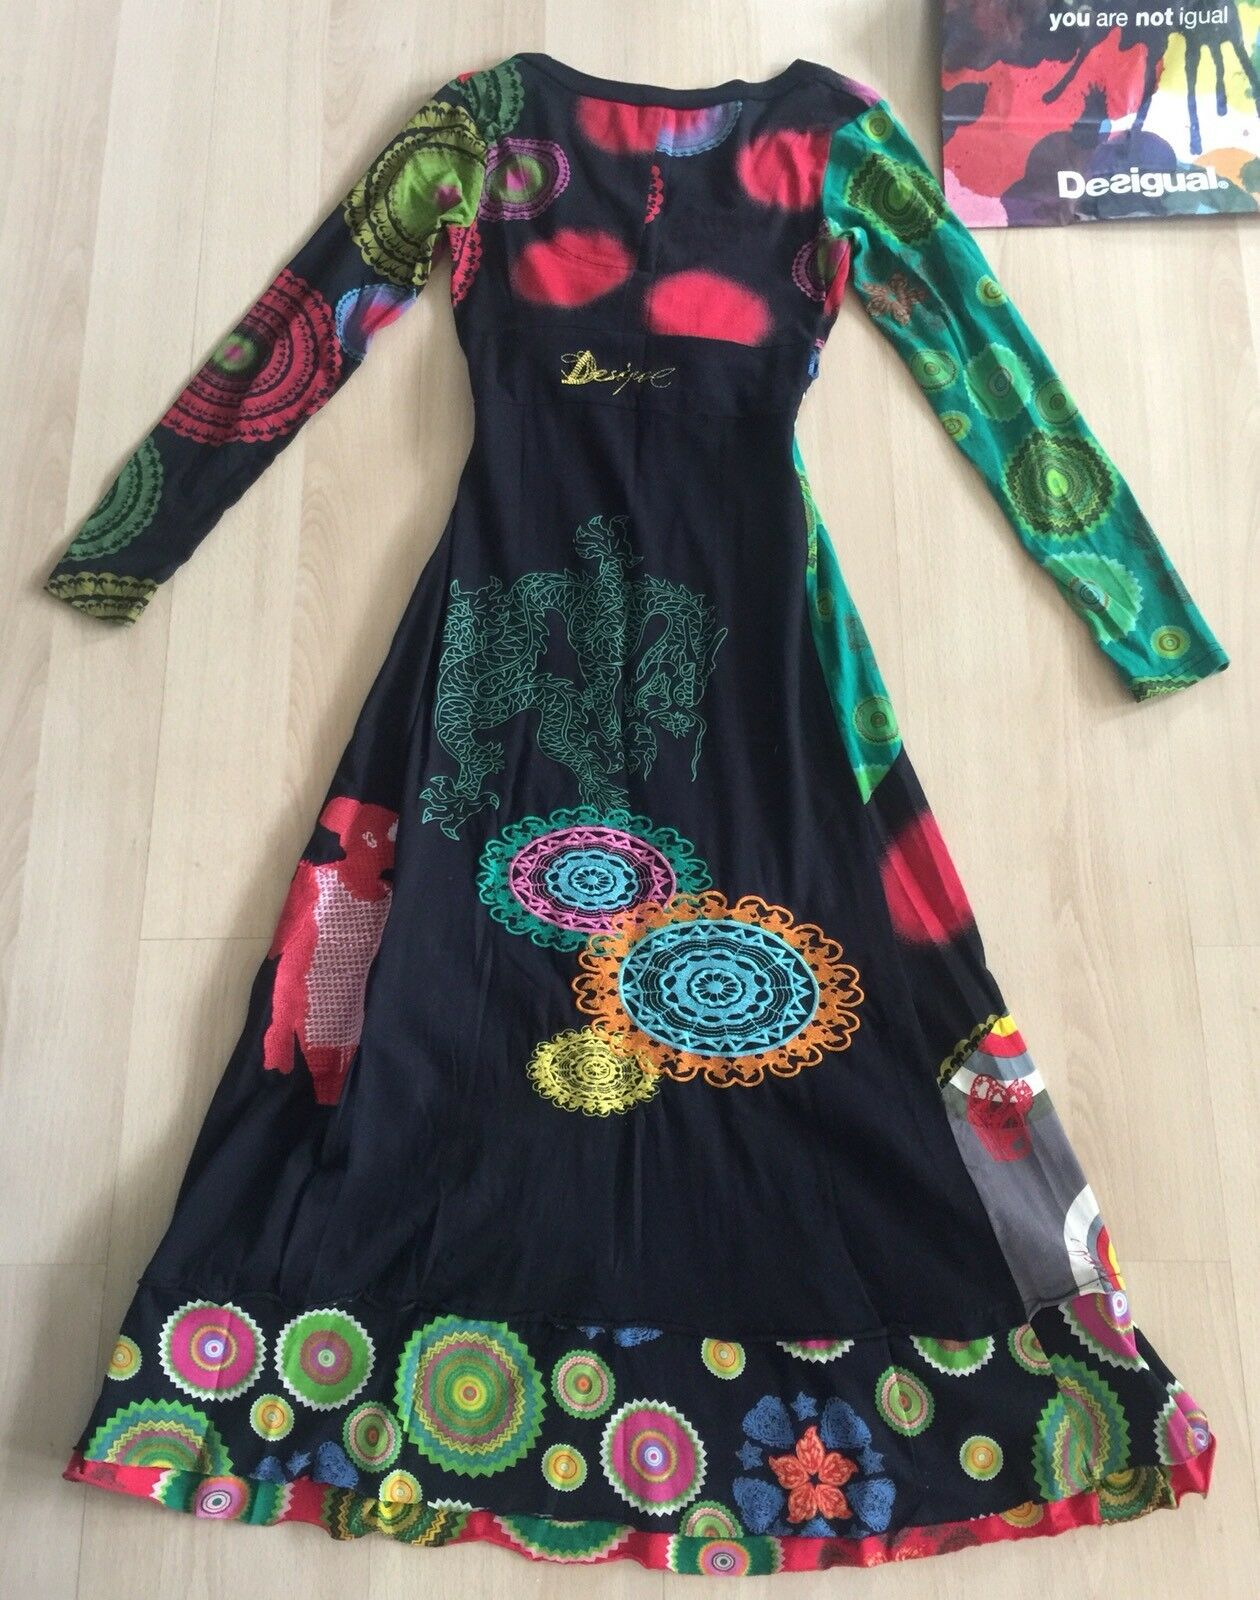 DESIGUAL DESIGUAL DESIGUAL colorful Dragon Dress Long Sleeves Cotton with Embroidery Size Small aacc64